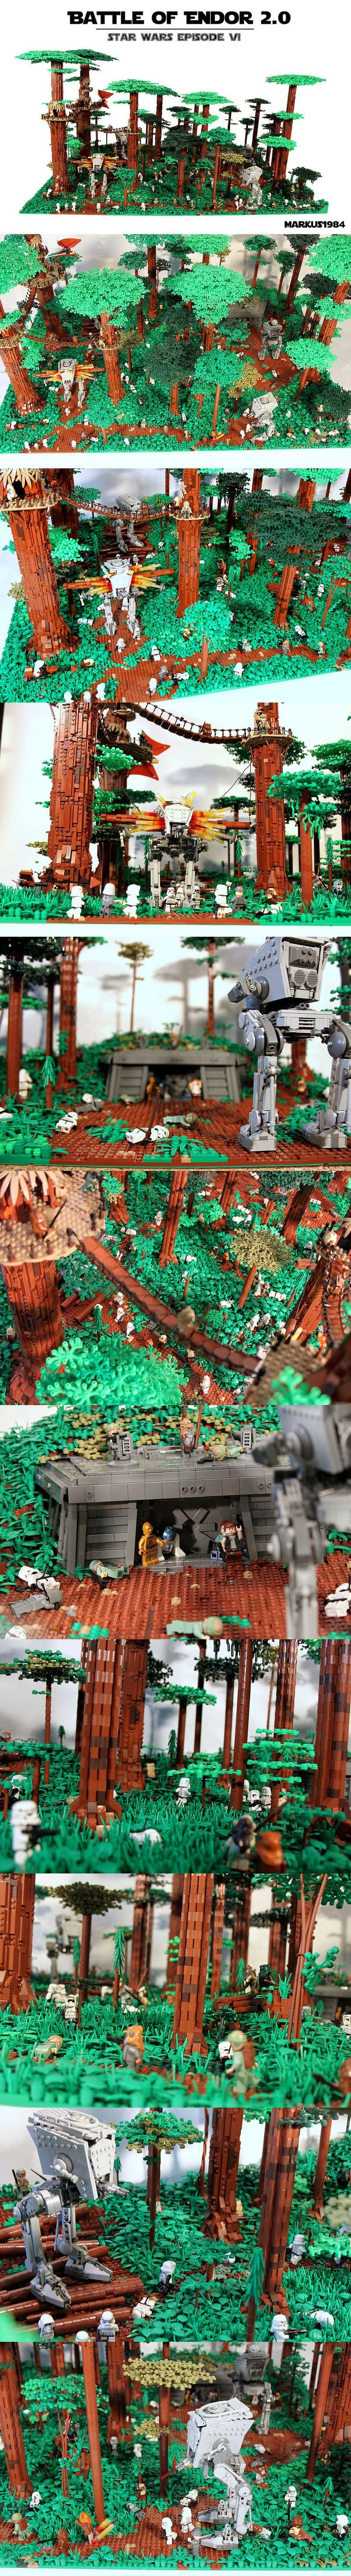 Battle of Endor... So this is on my Christmas list already!